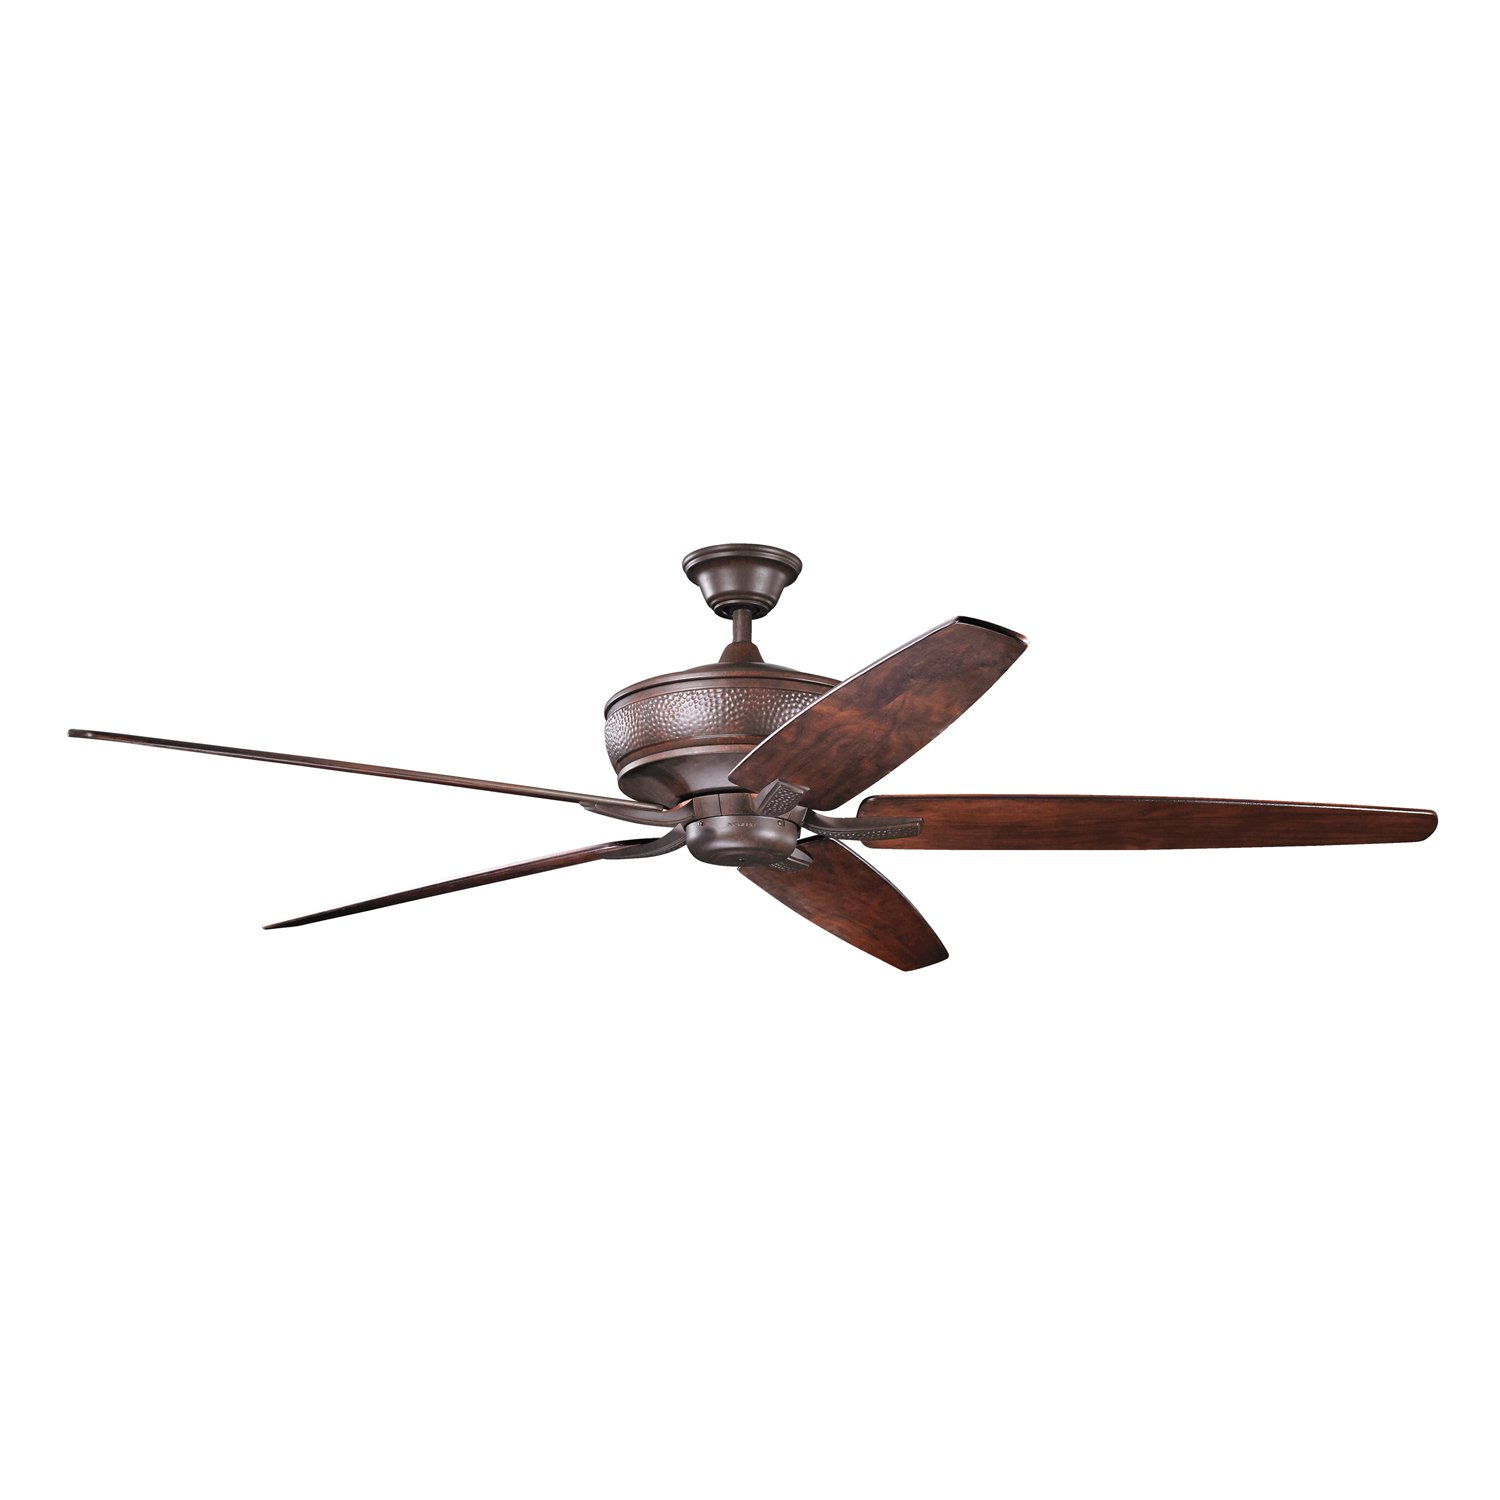 Kichler TZ 70 Ceiling Fan Amazon